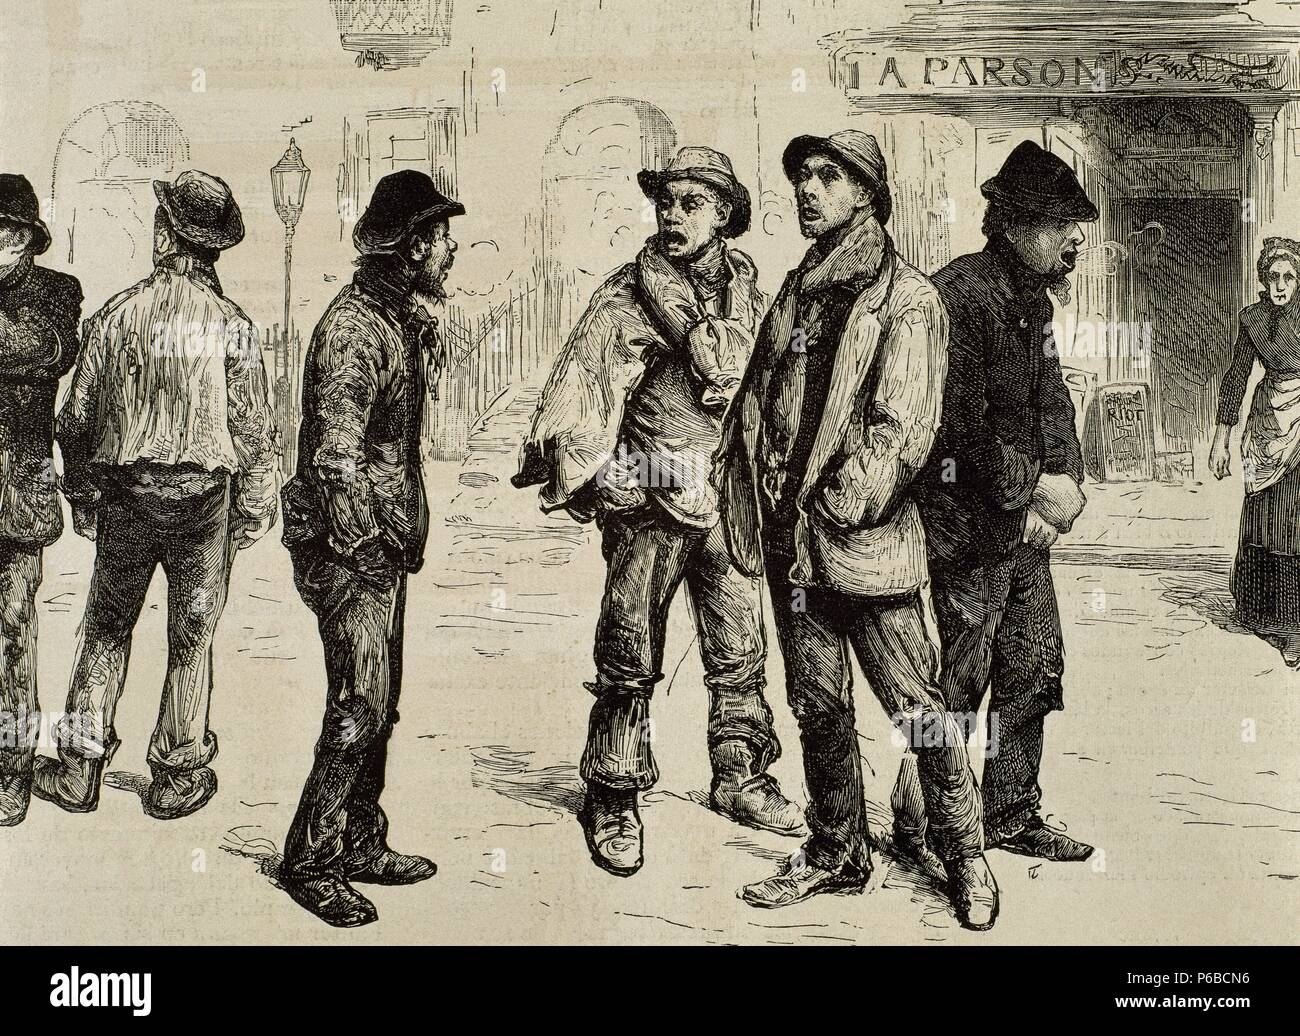 Great Britain. London. Unemployed workers who participated in the meeting of February 8, 1886 and raided stores Picadilly. England. - Stock Image